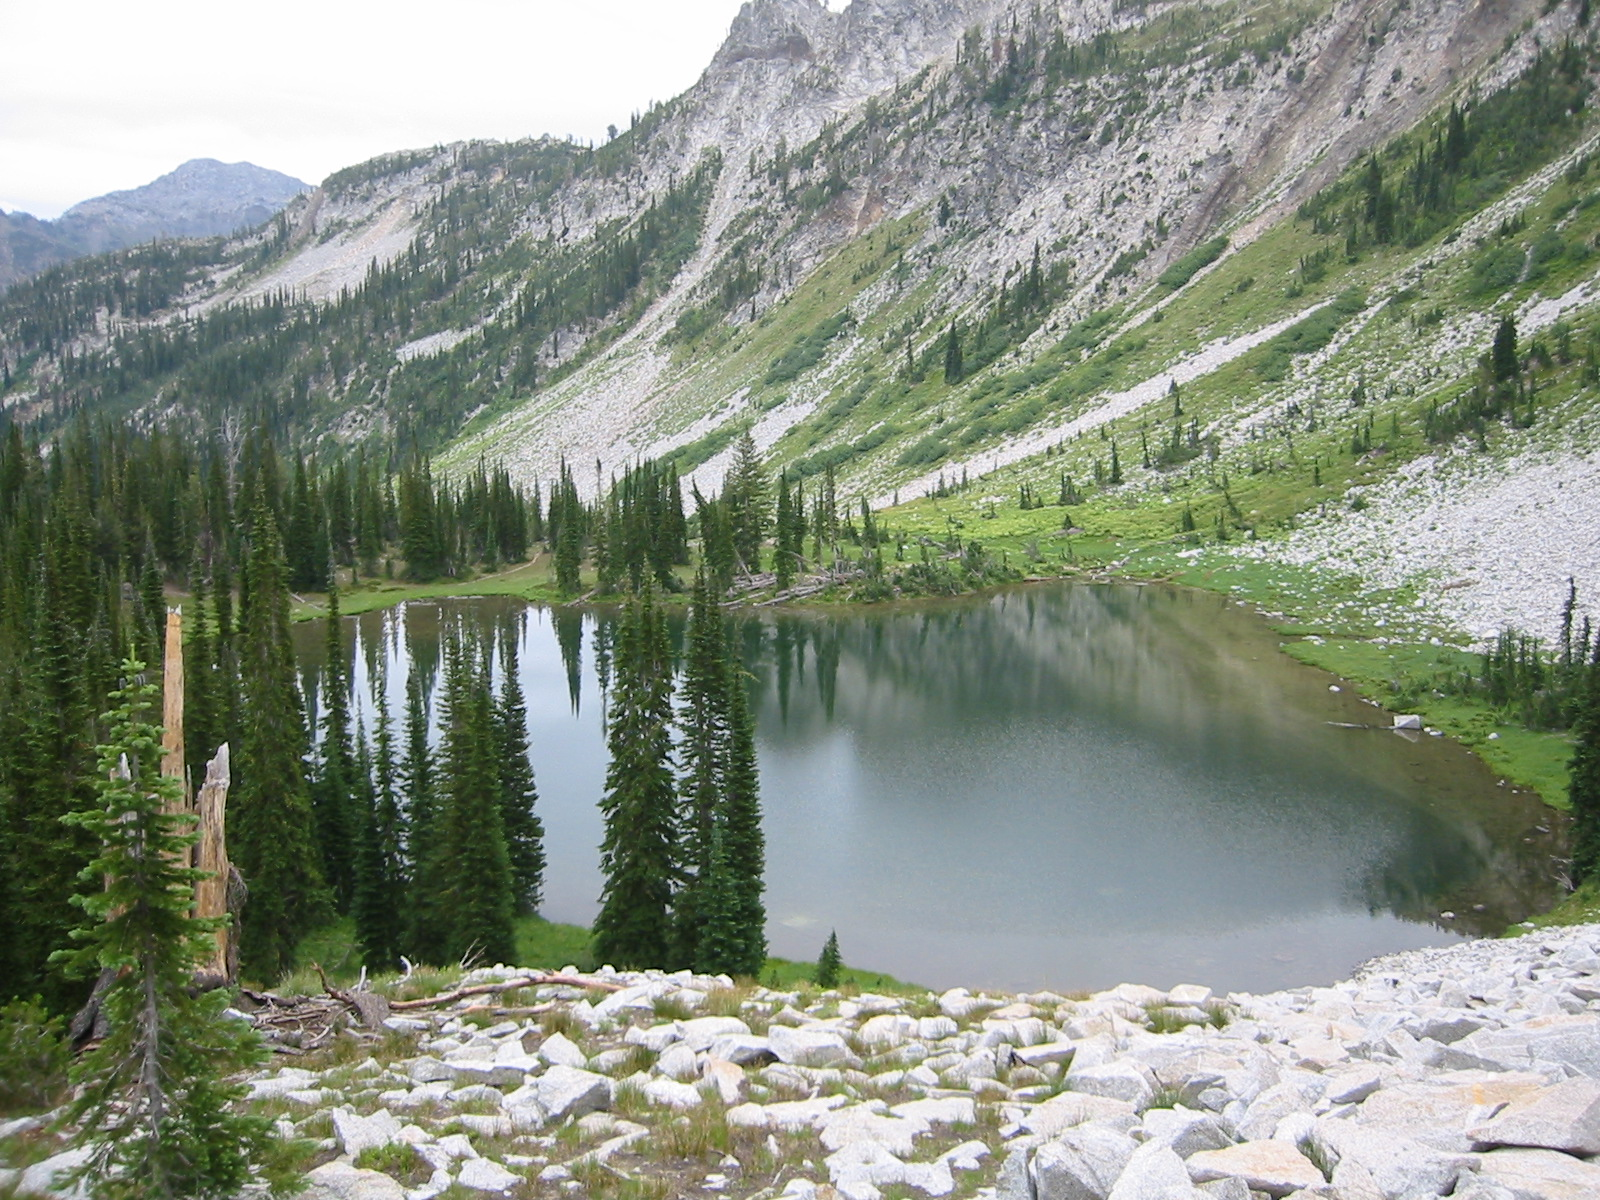 High subalpine lake in the wilderness